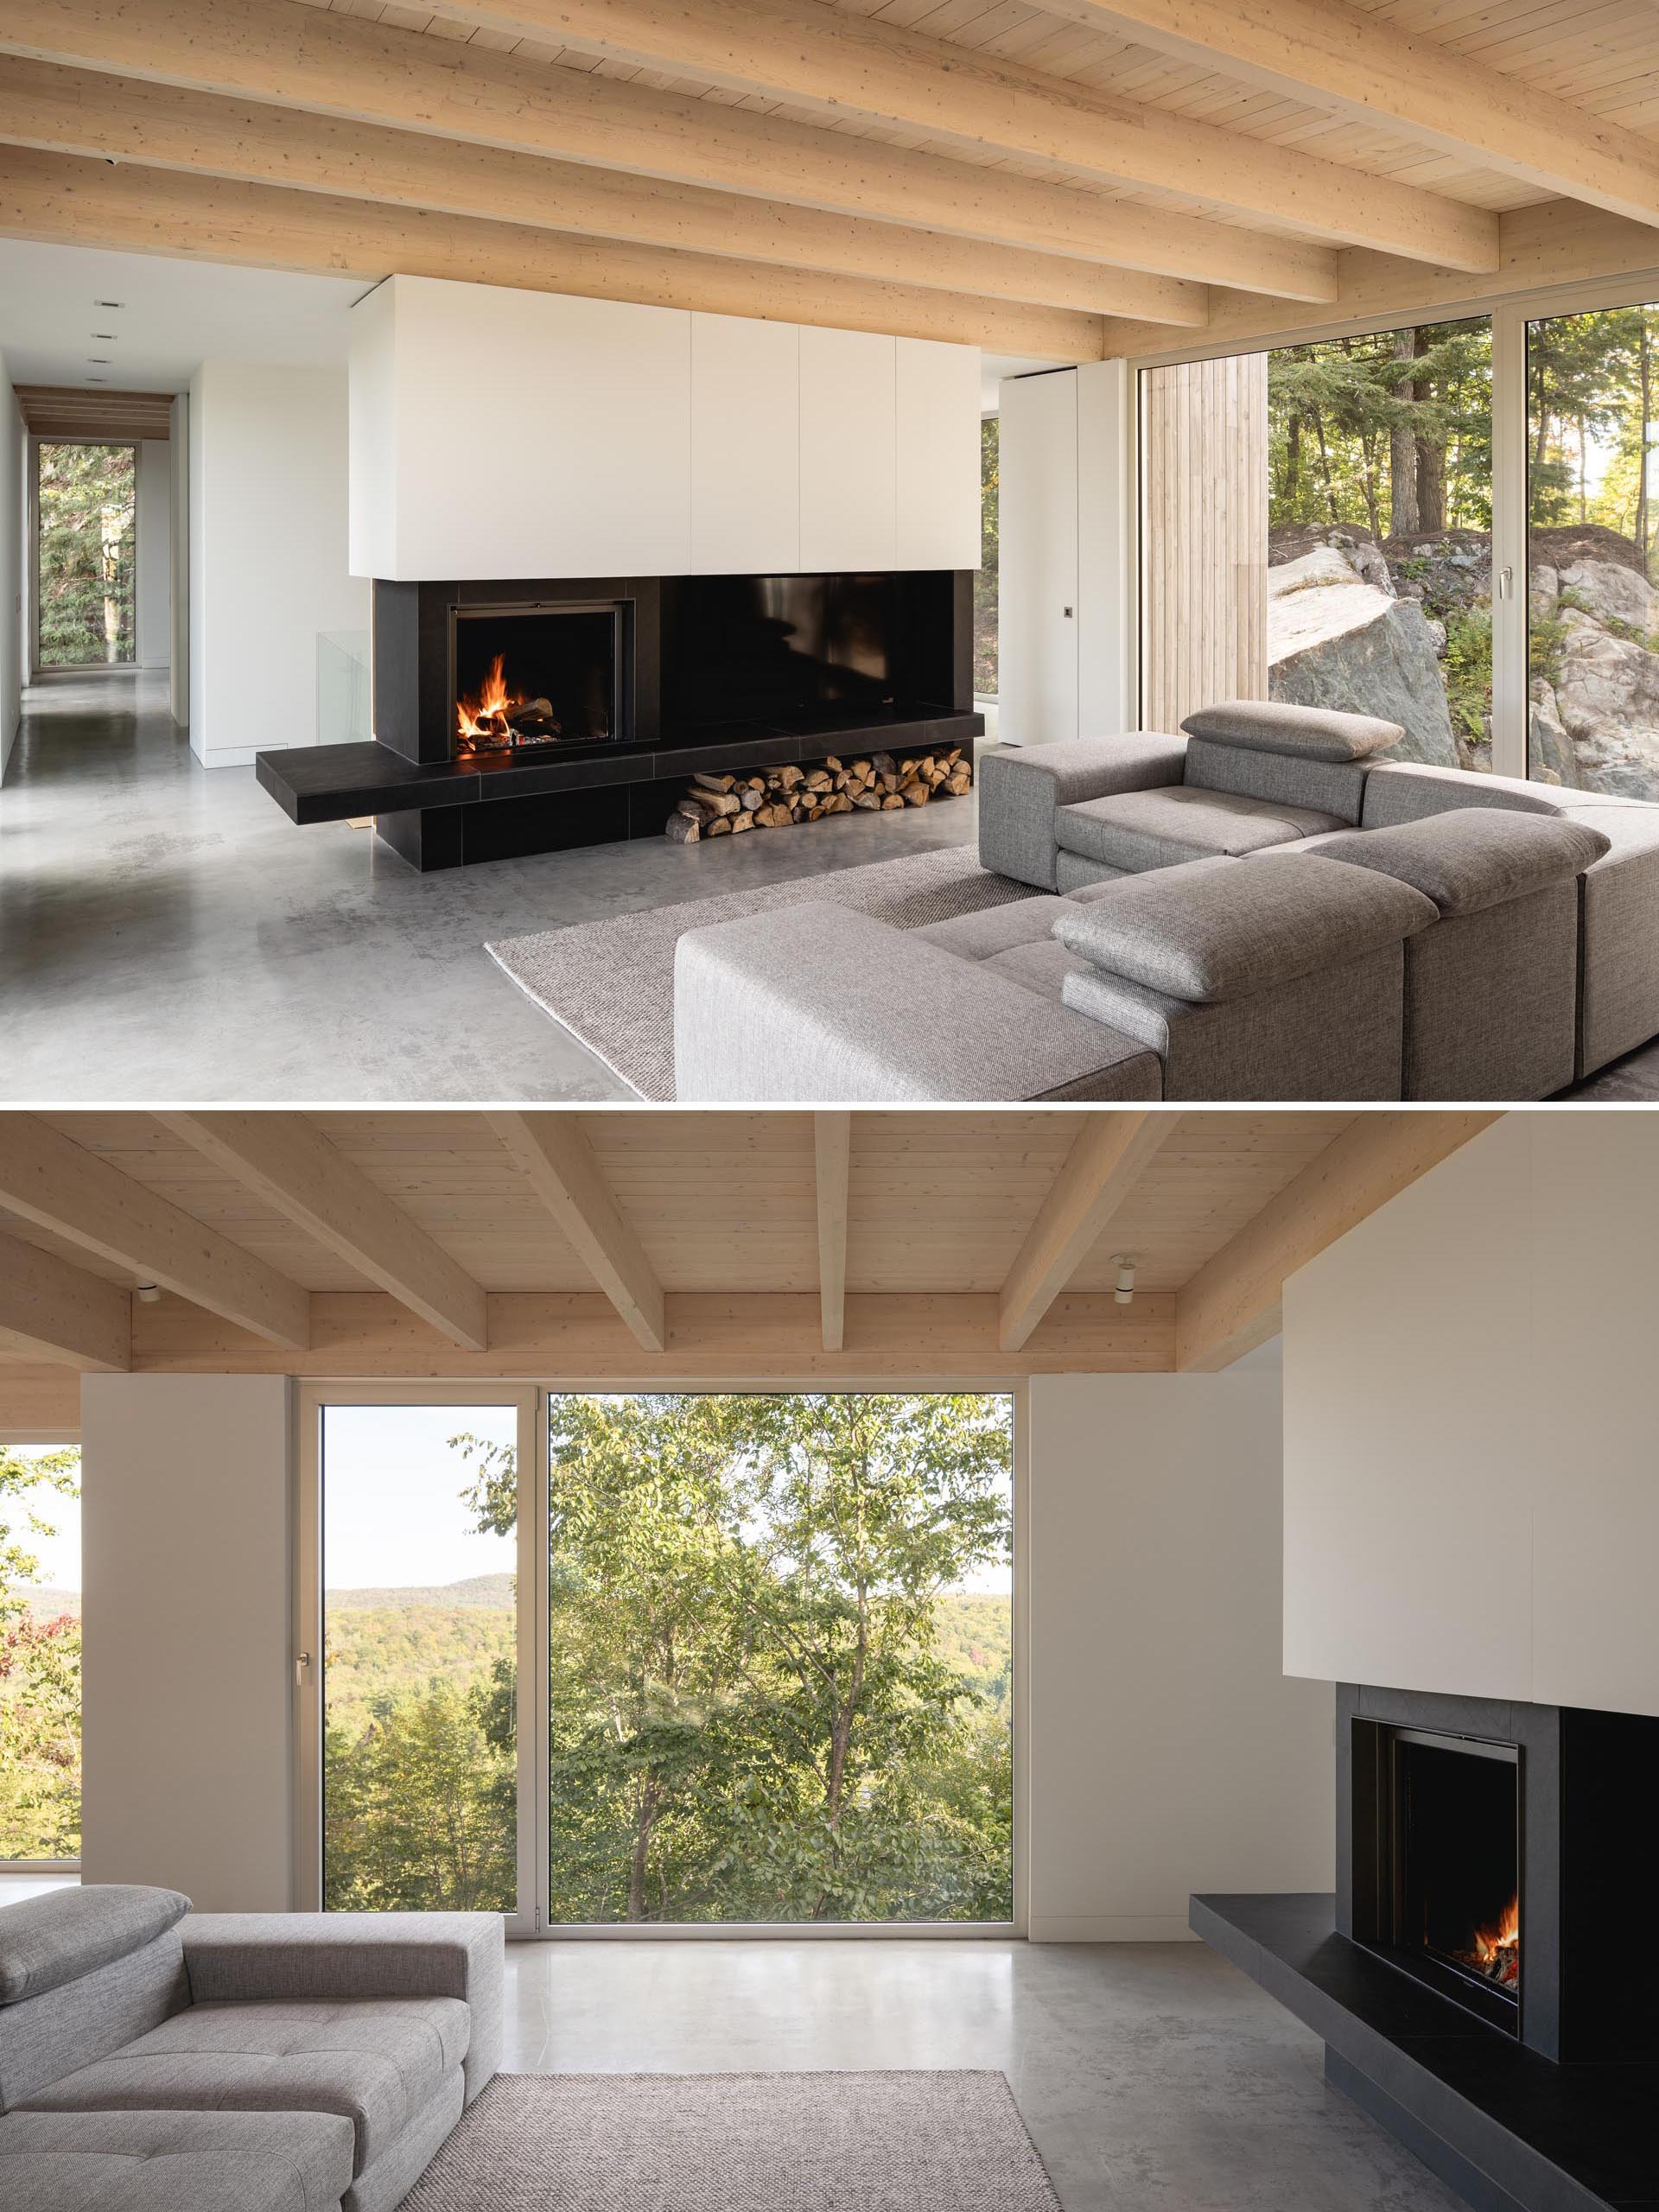 A black fireplace surround that incorporates the television adds a contrasting element, and the exposed roof structure is made from black spruce.